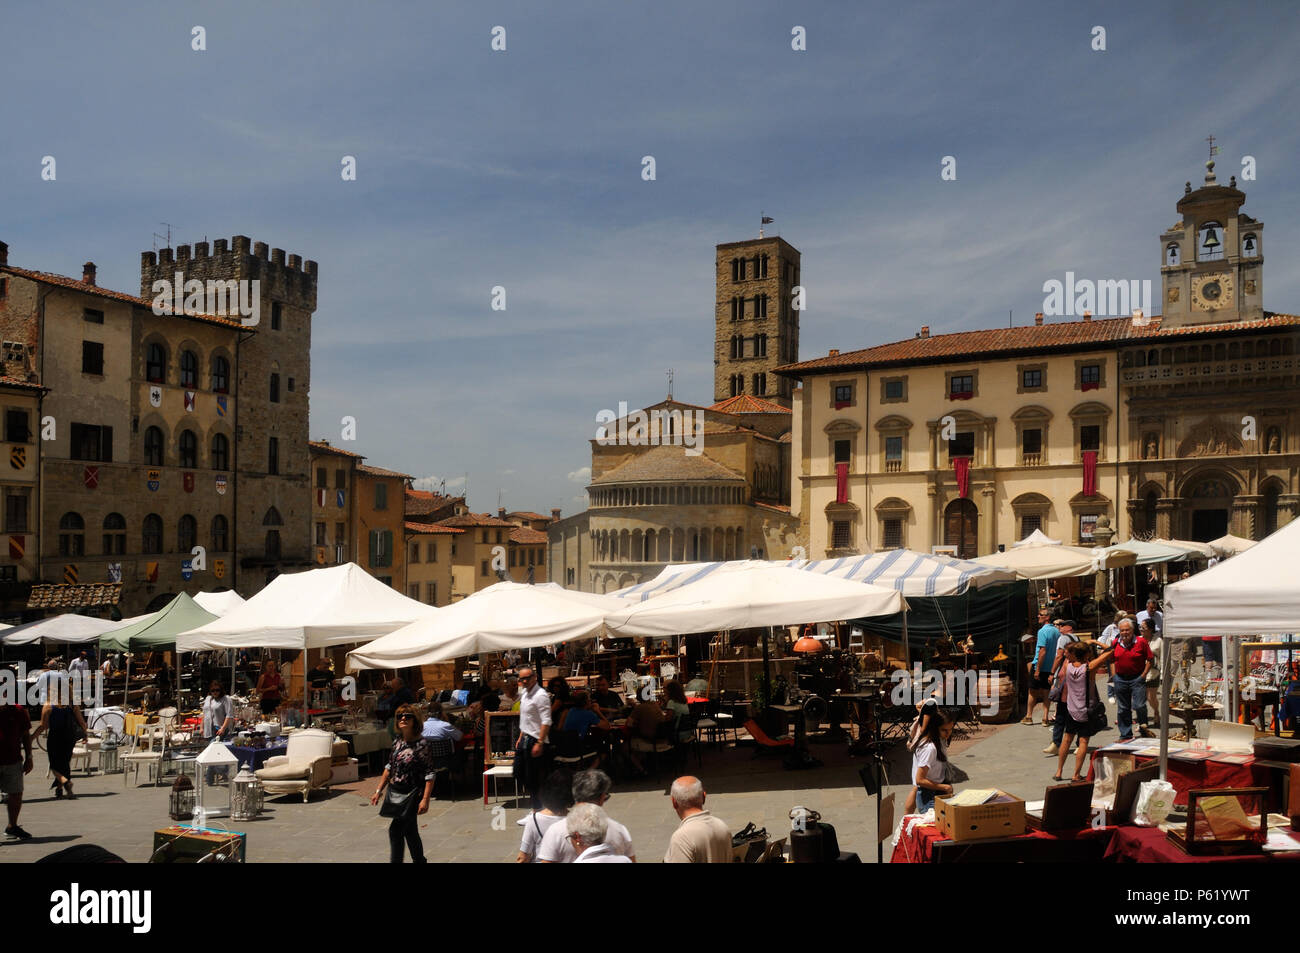 One of the monthly Antiquarian Fairs of Arezzo in progress in the Piazza Grande, Arezzo, Tuscany, Italy - Stock Image